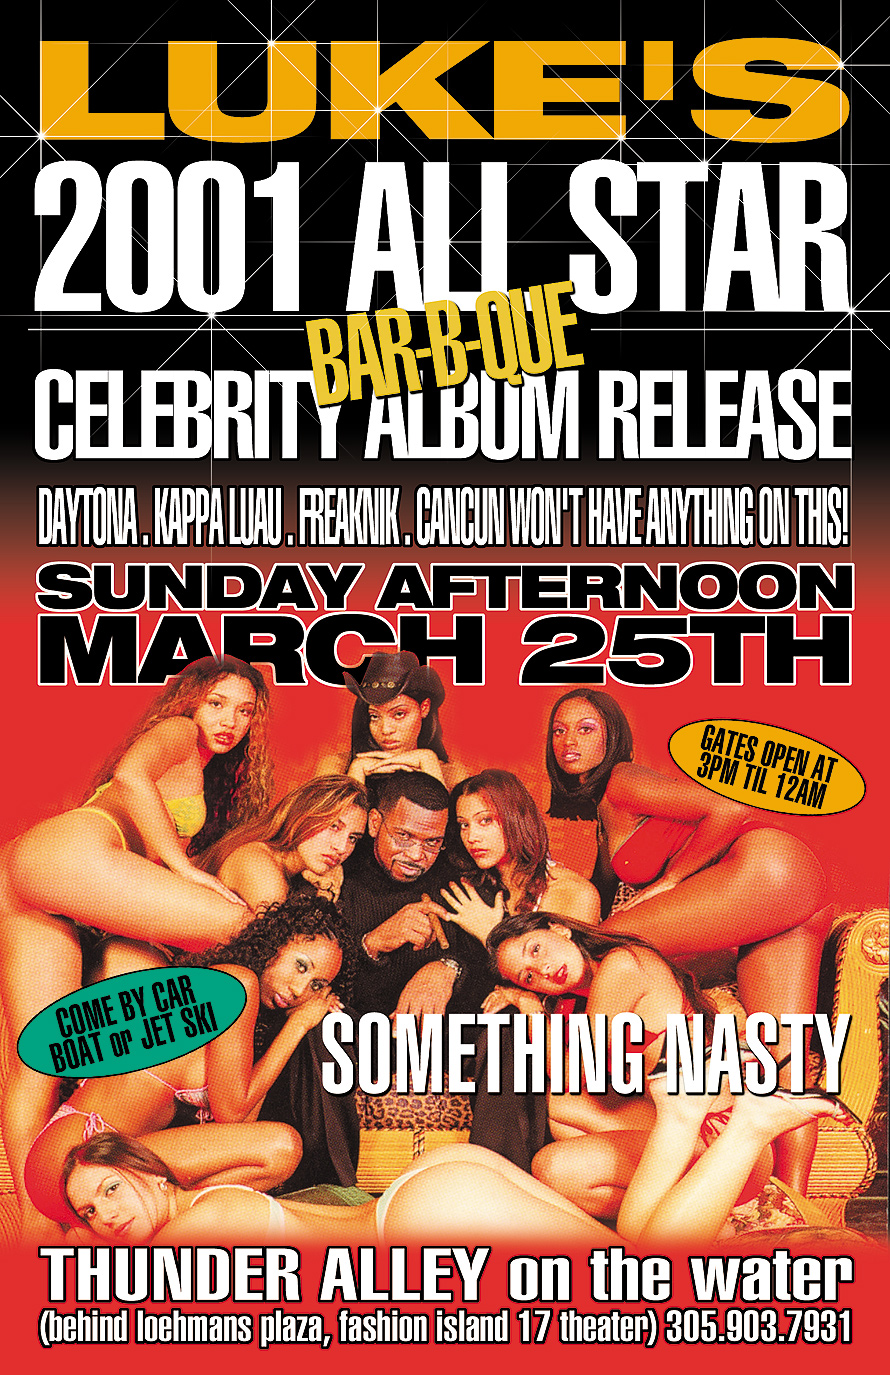 All Star Celebrity Album Release at Thunder Alley on the Water